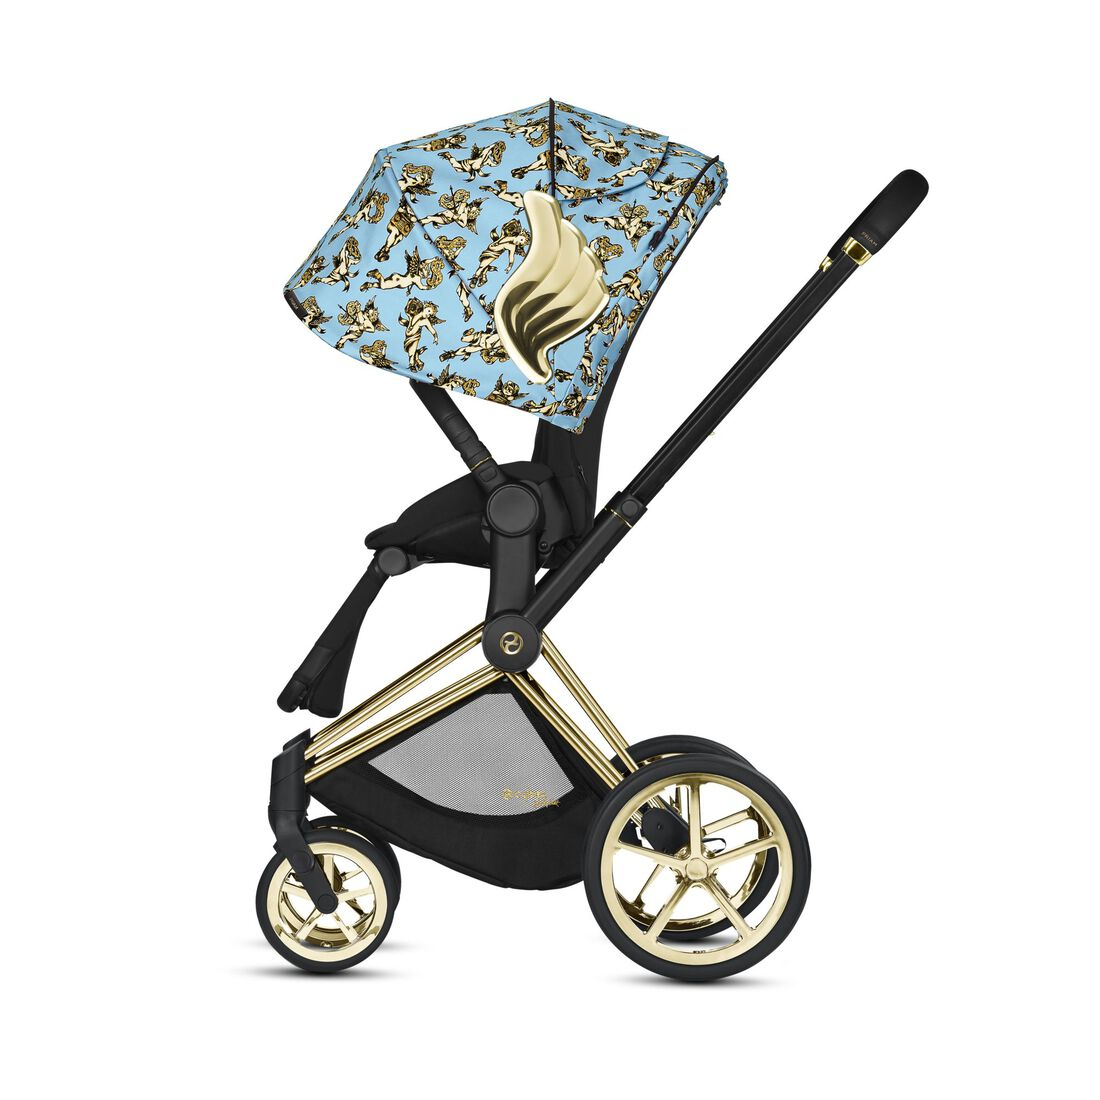 CYBEX Priam Jeremy Scott - Cherubs Blue in Cherubs Blue large Bild 4